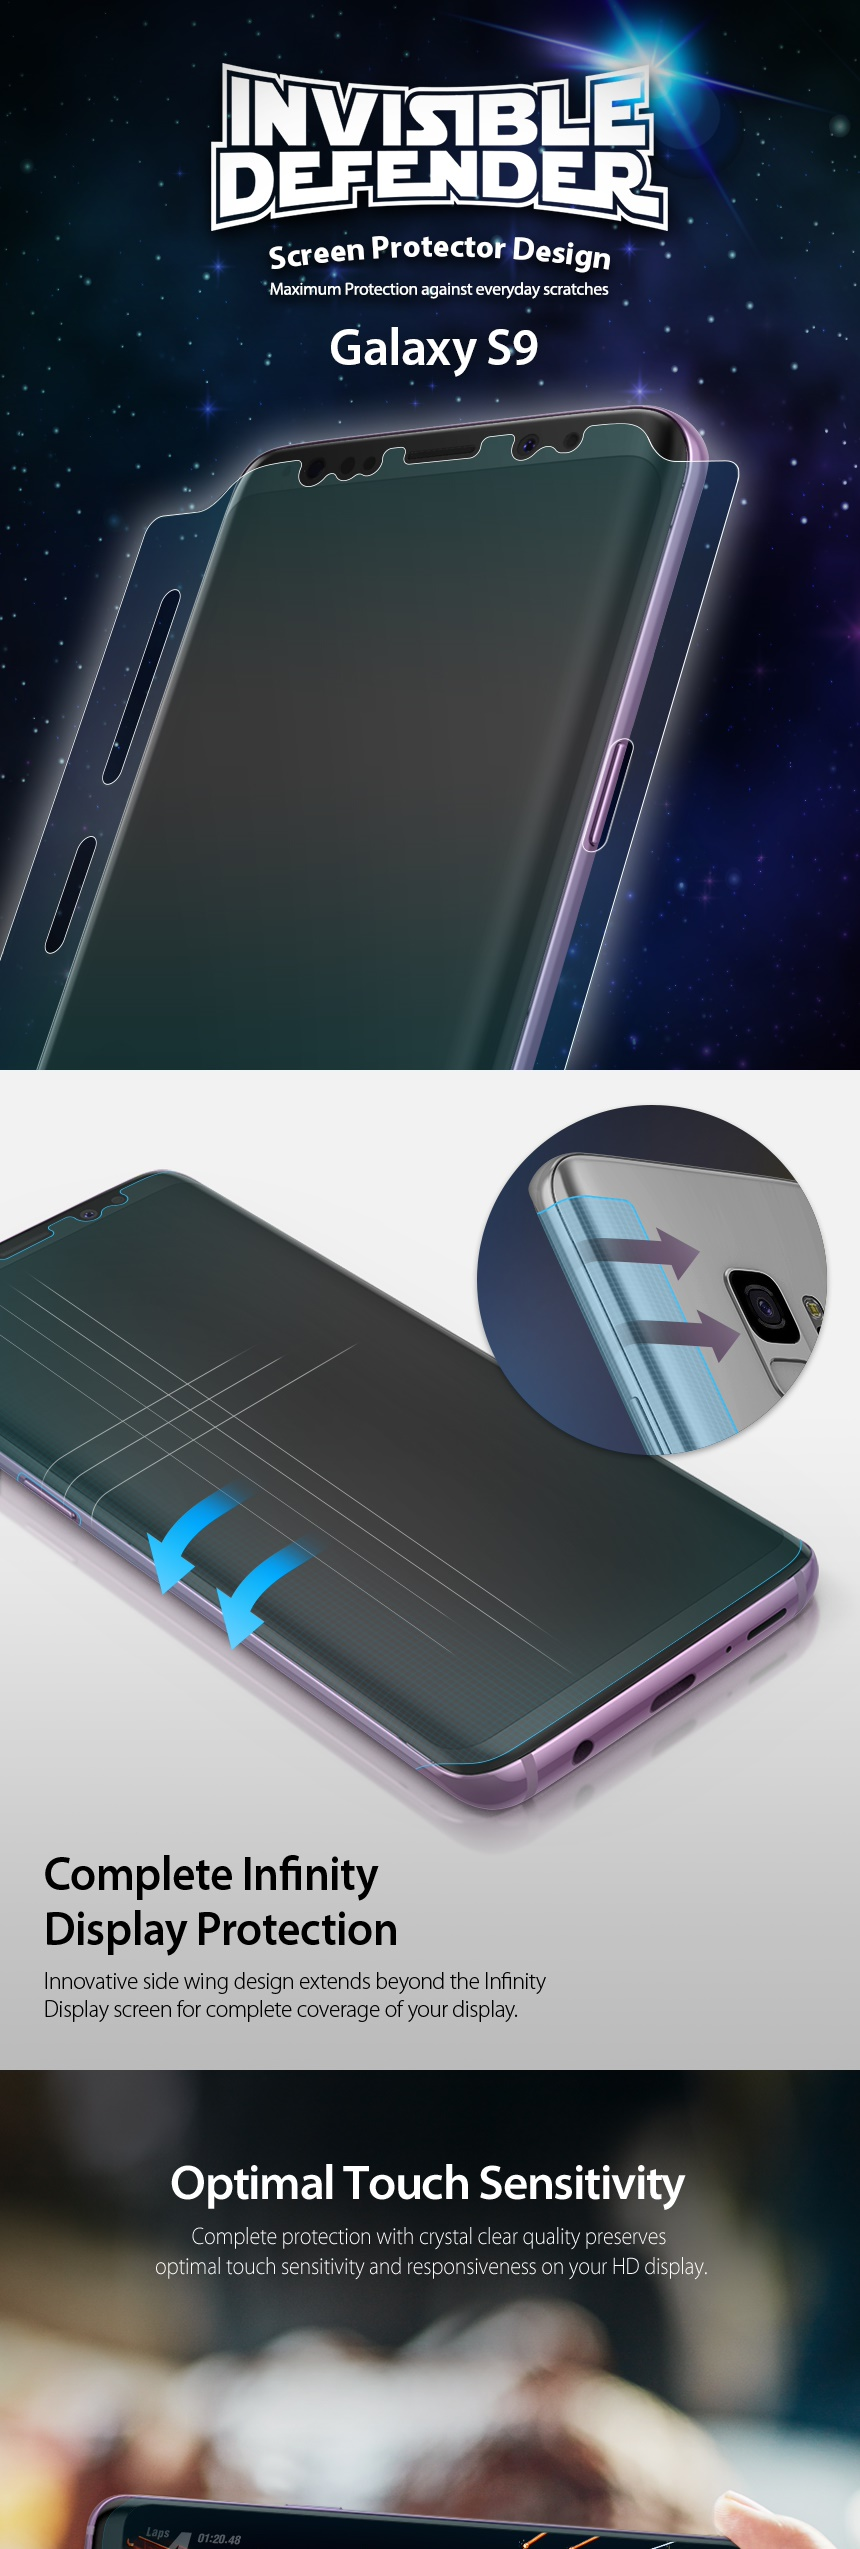 Every Need Want Day Rearth Ringke Galaxy S8 Invisible Defender Screen Protector Air